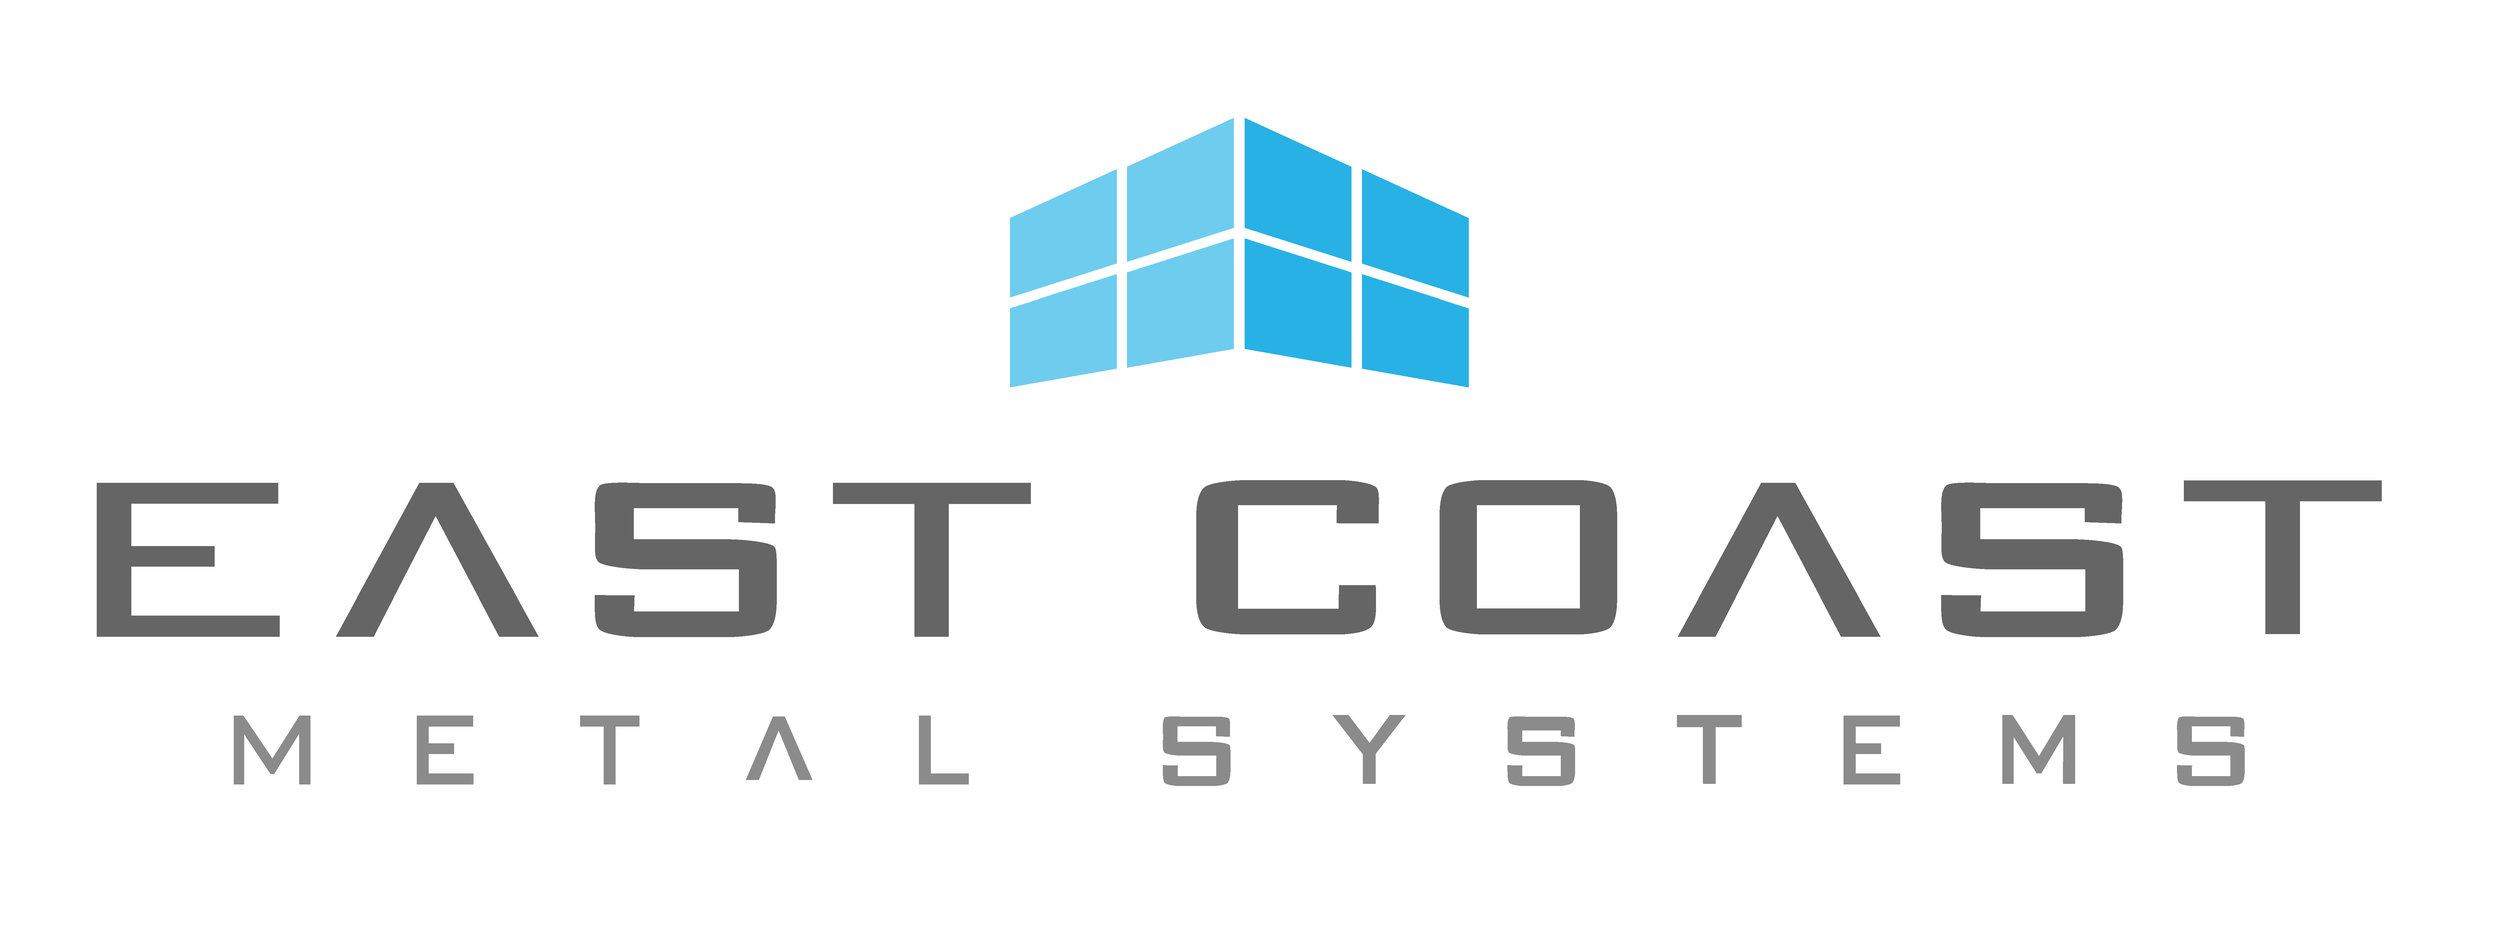 - East Coast Metal Systems has been providing engineered architectural metal and exterior envelope systems for nearly three decades. Our deeply rooted history in the construction industry makes us an invaluable tool for architects and general contractors alike. We know the construction delivery process inside and out. From project development and design to installation, we help our customers realize the potential of every project.